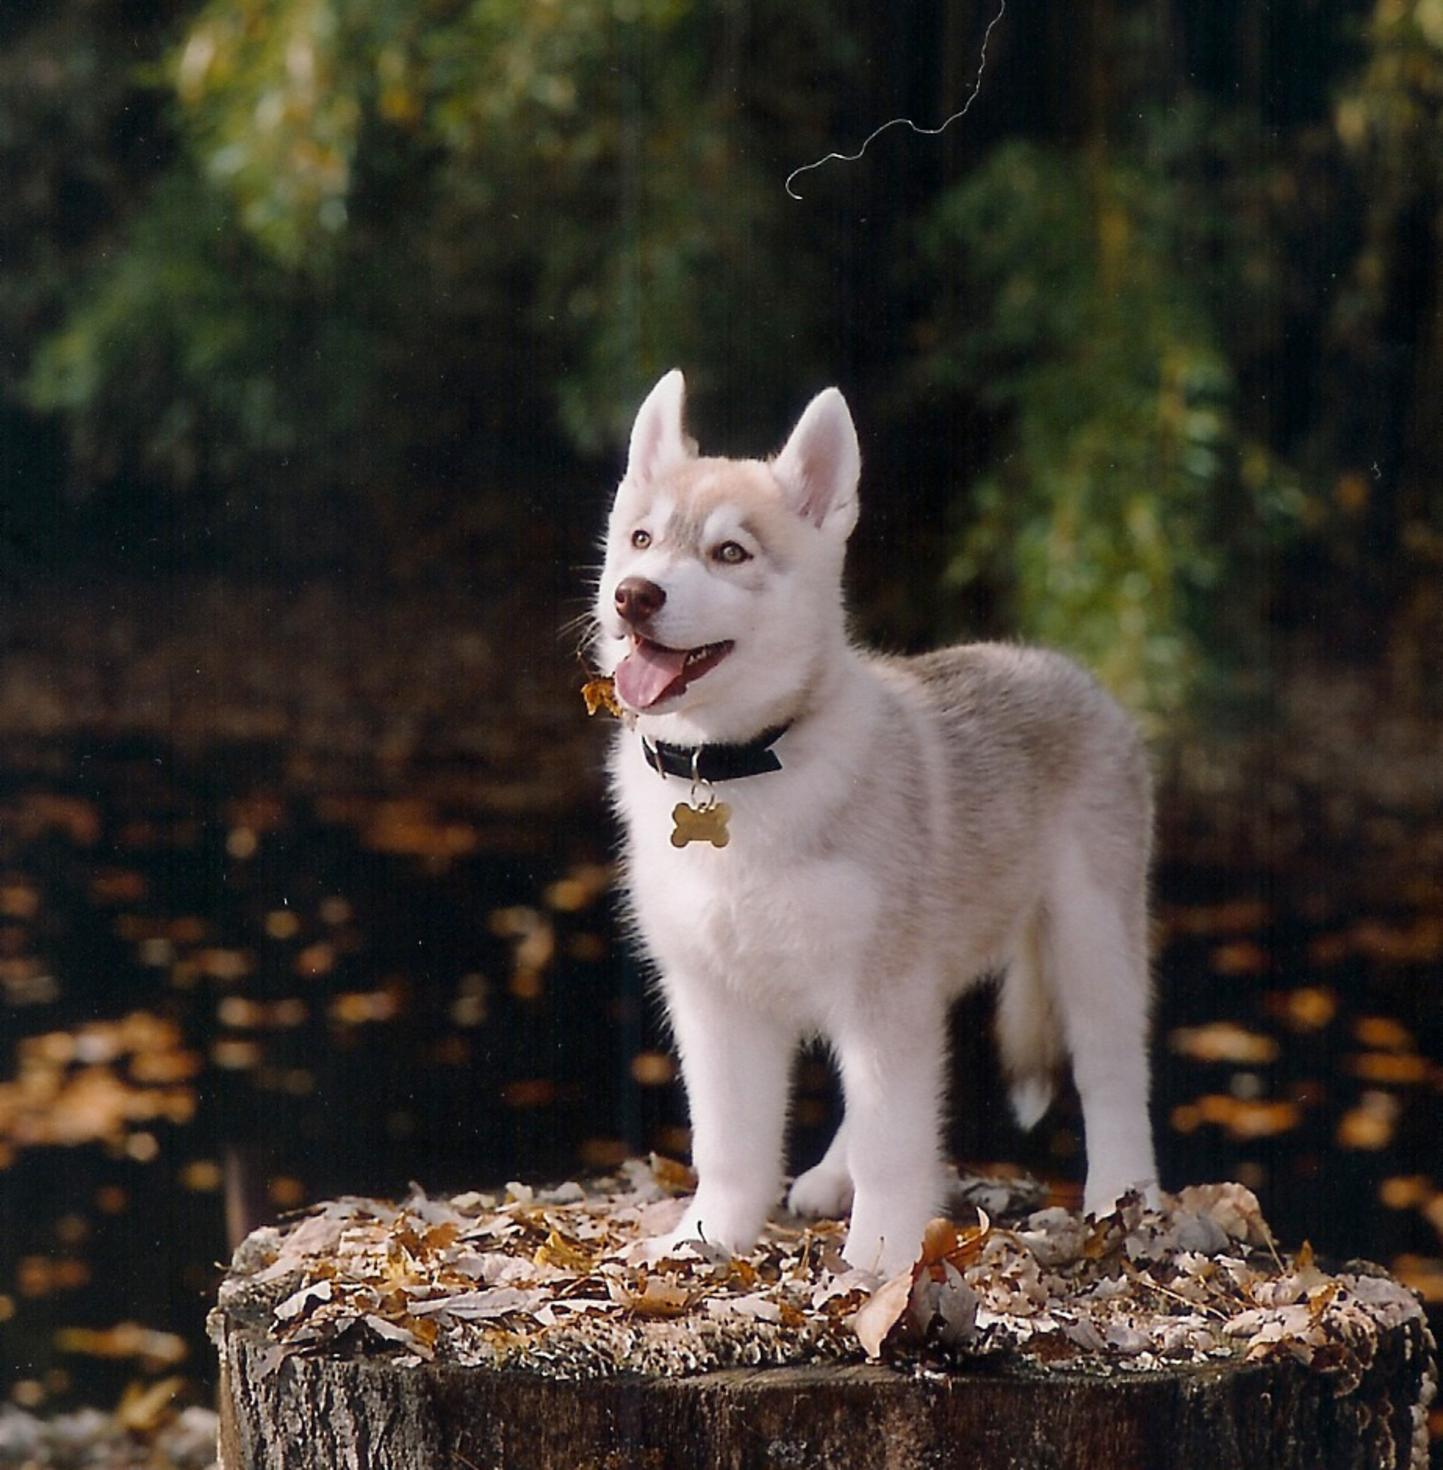 Wallpapers-hub: Cute Siberian Huskies Puppies Wallpapers